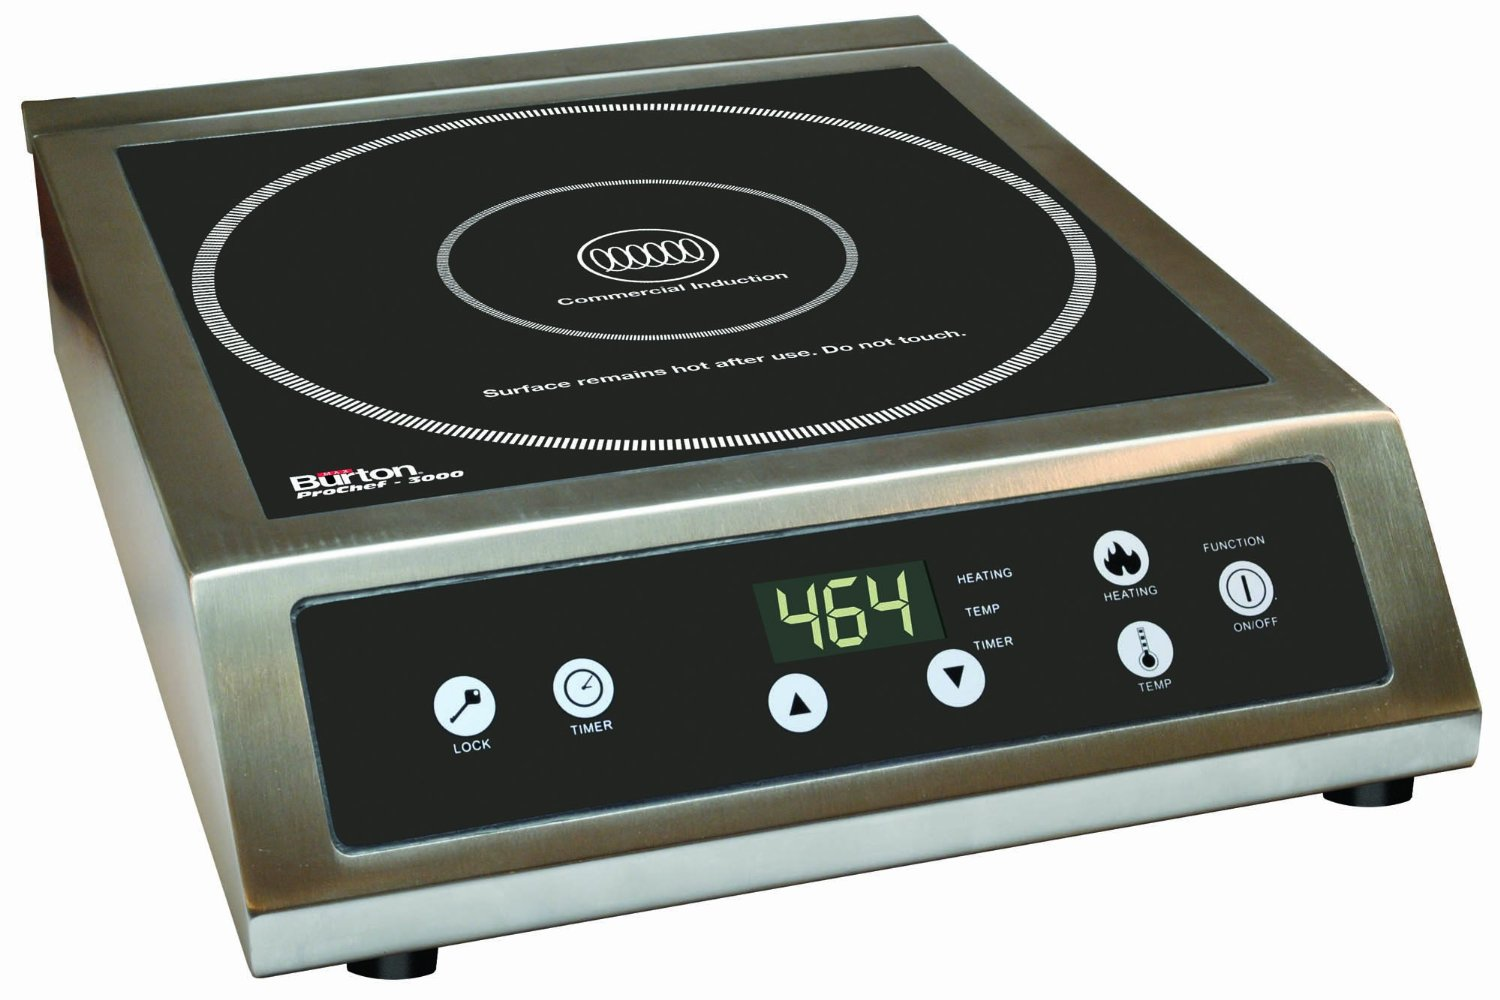 Induction Cooktop True Induction S2f3 Counter Inset Double Burner Induction